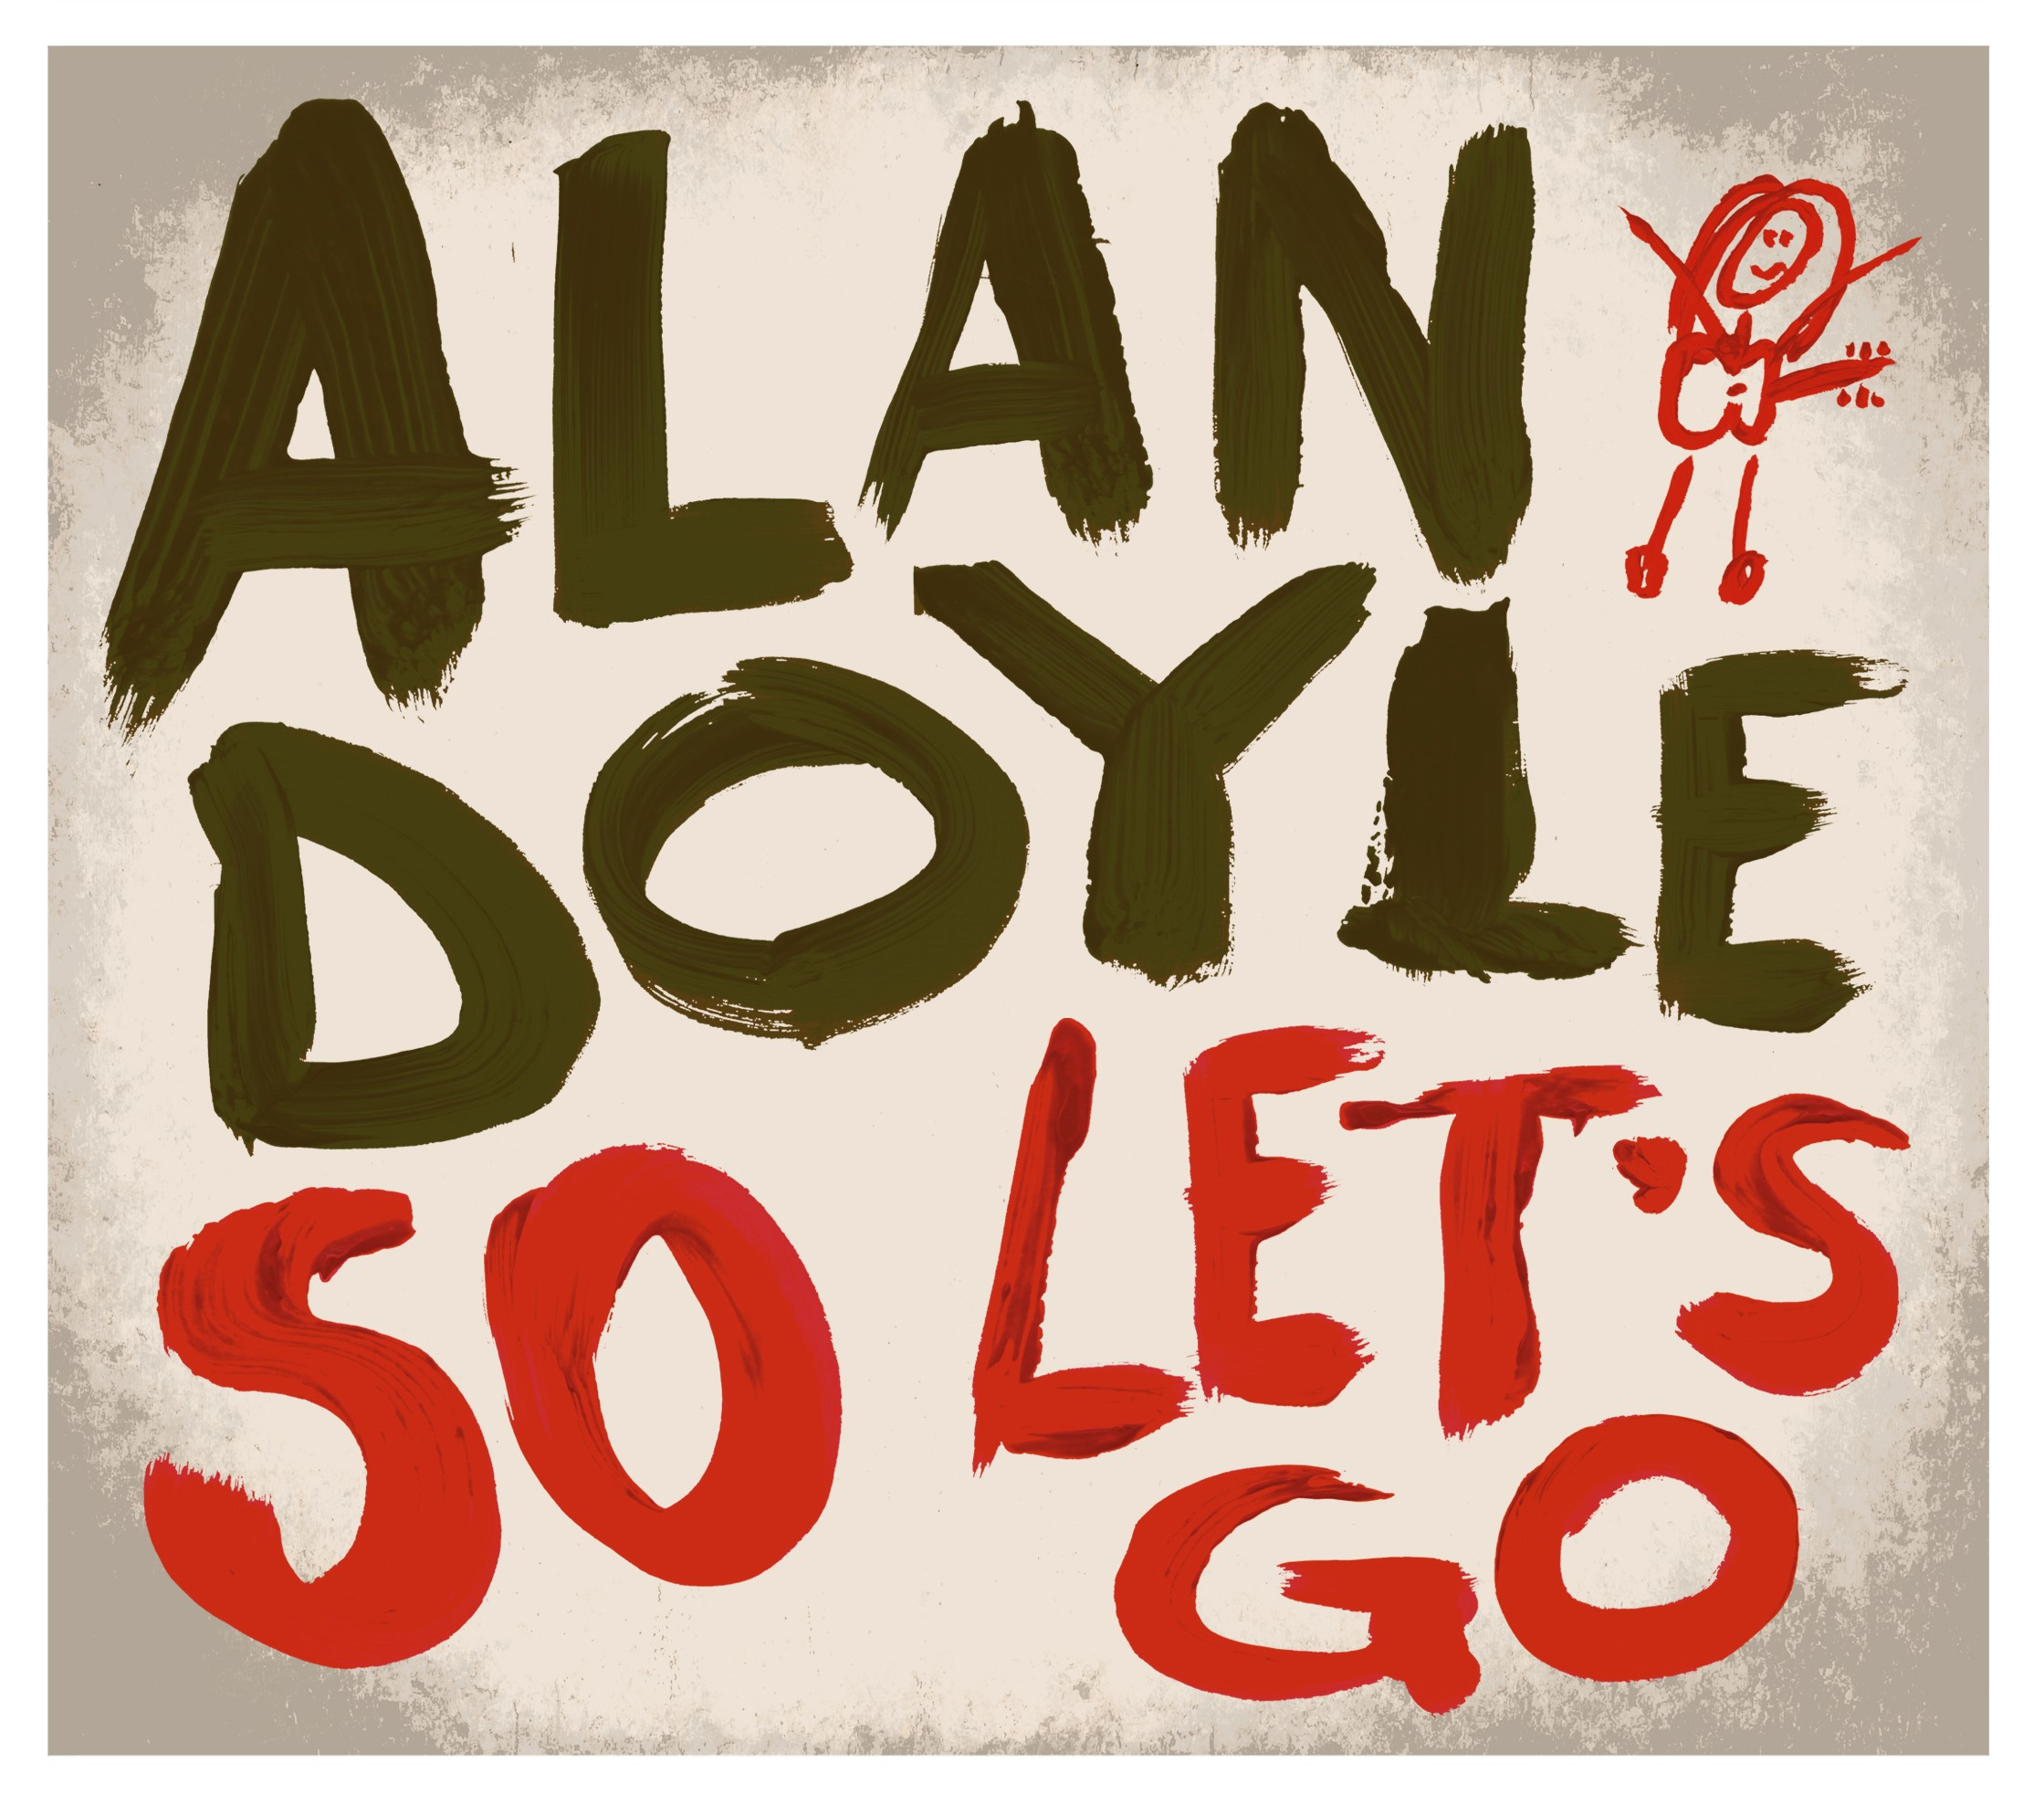 Freds Records 187 Blog Archive Alan Doyle So Let S Go